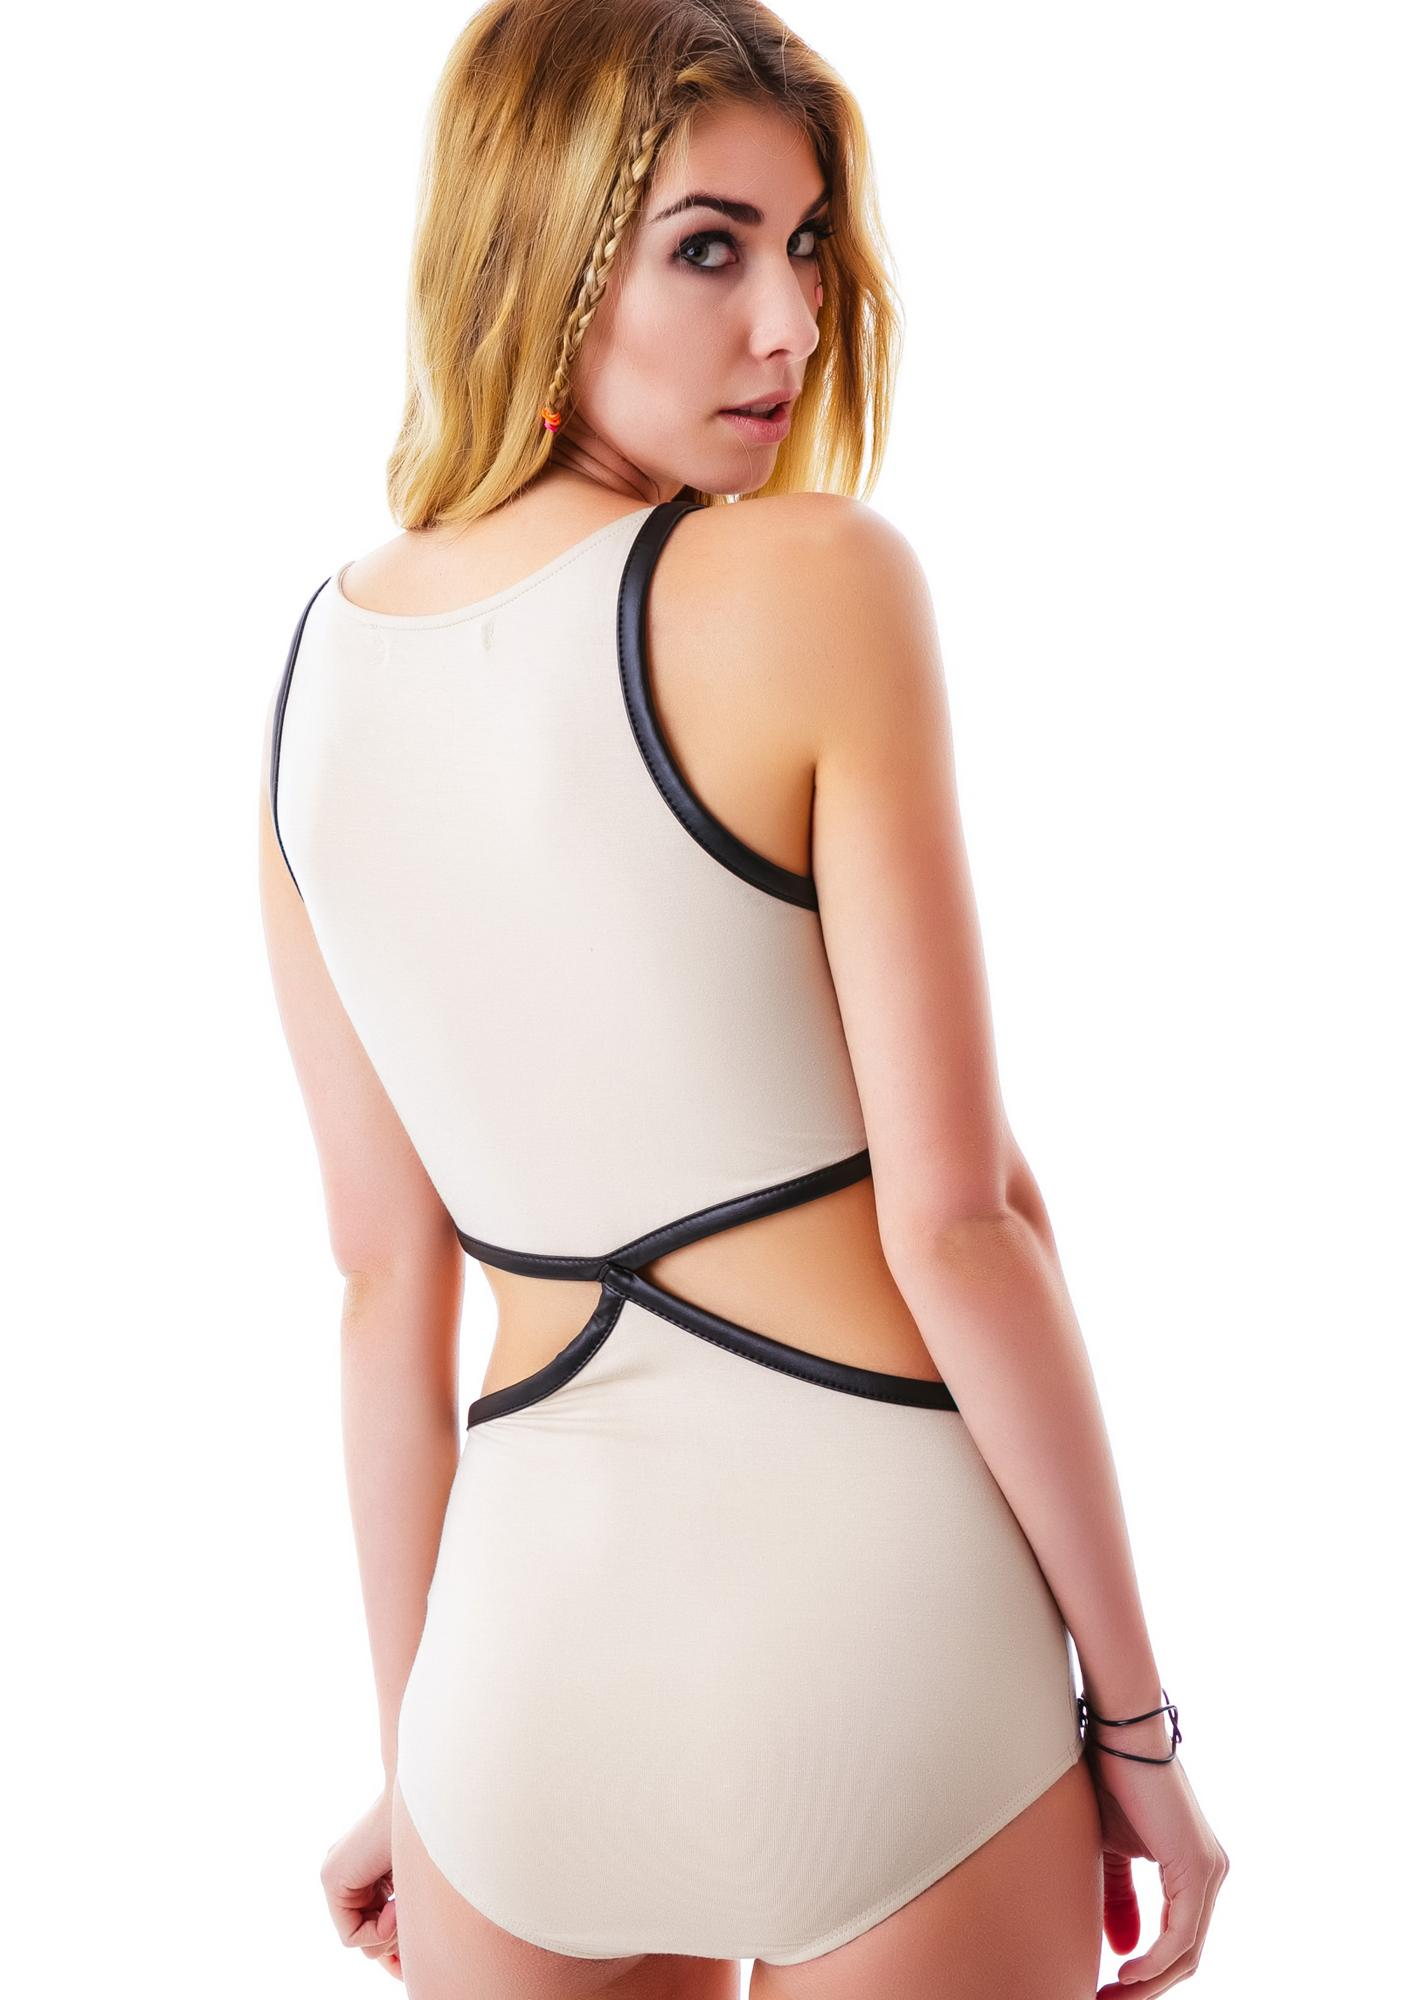 Alicia Leather Trim Cut Out Bodysuit